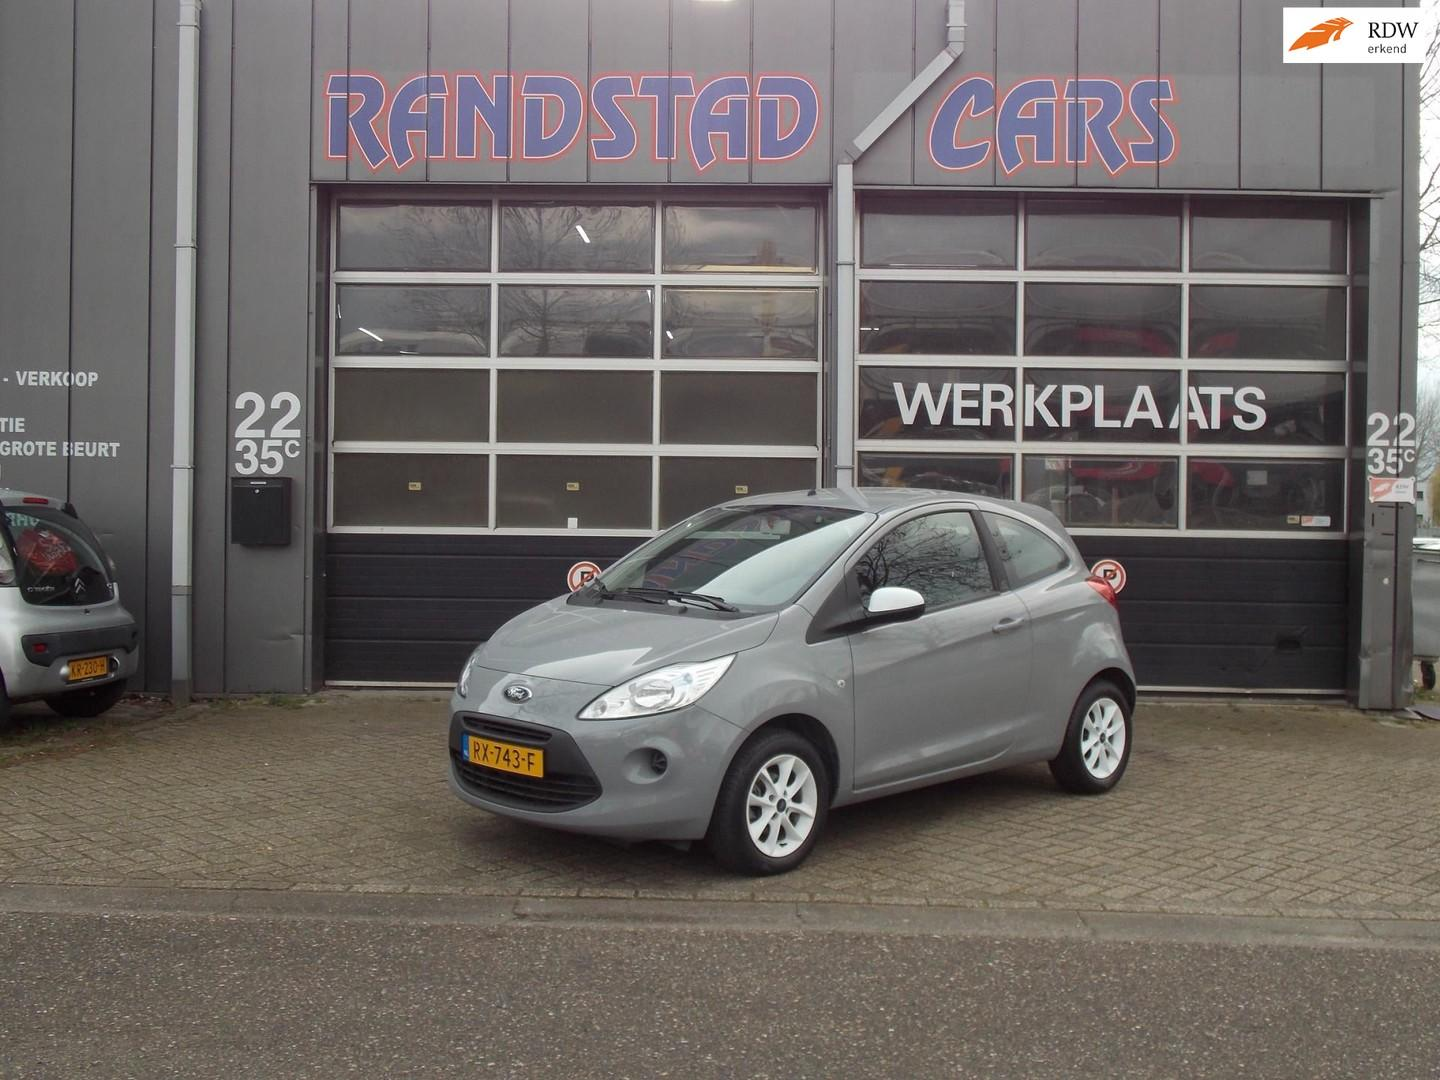 Ford Ka 1.2 limited start/stop airco elek pakket stoelverwarming 2016bj garantie